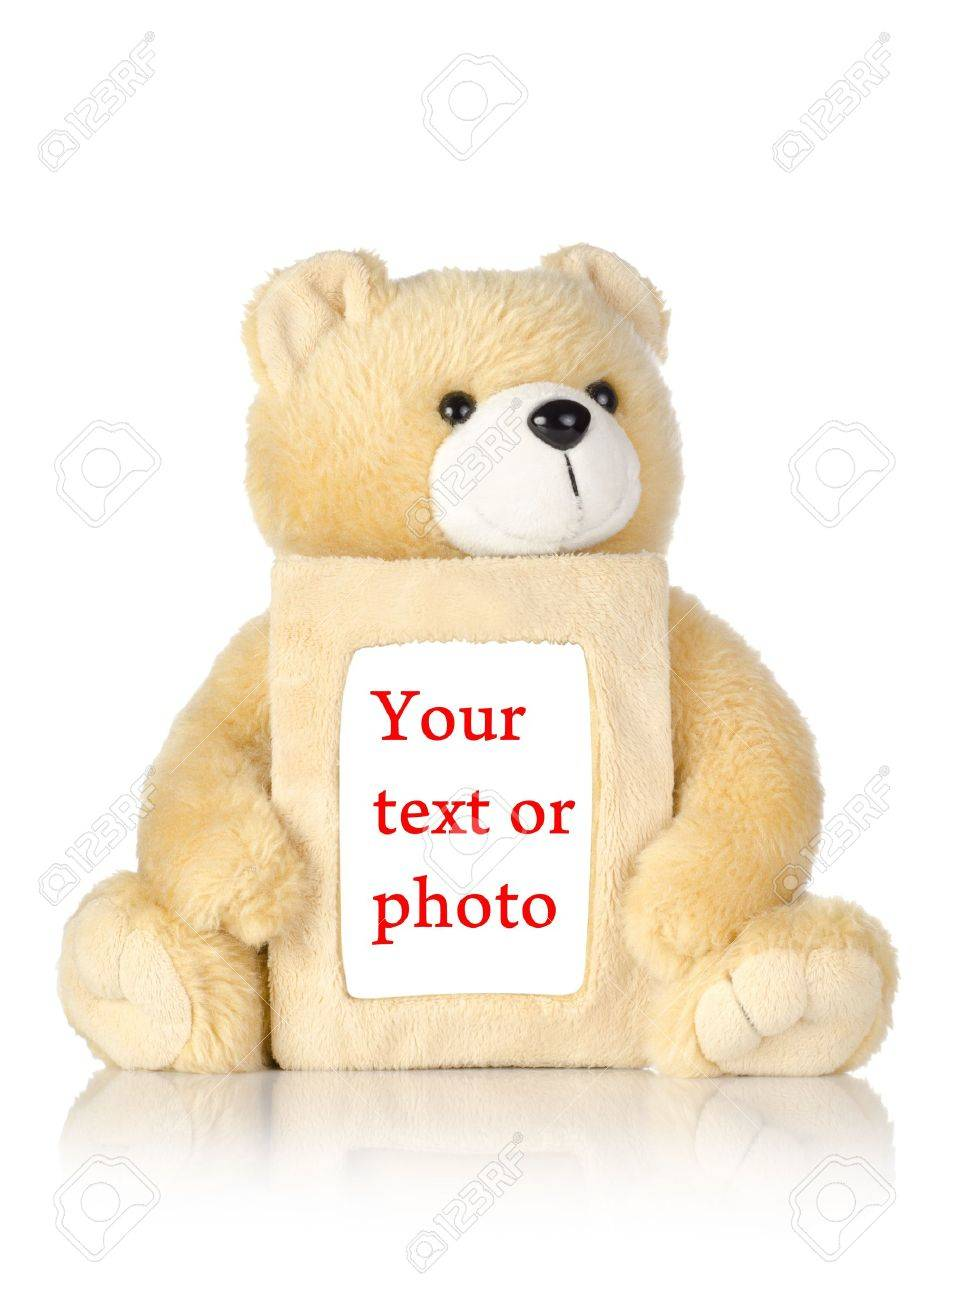 Teddy Bear With Photo Frame Stock Photo Picture And Royalty Free